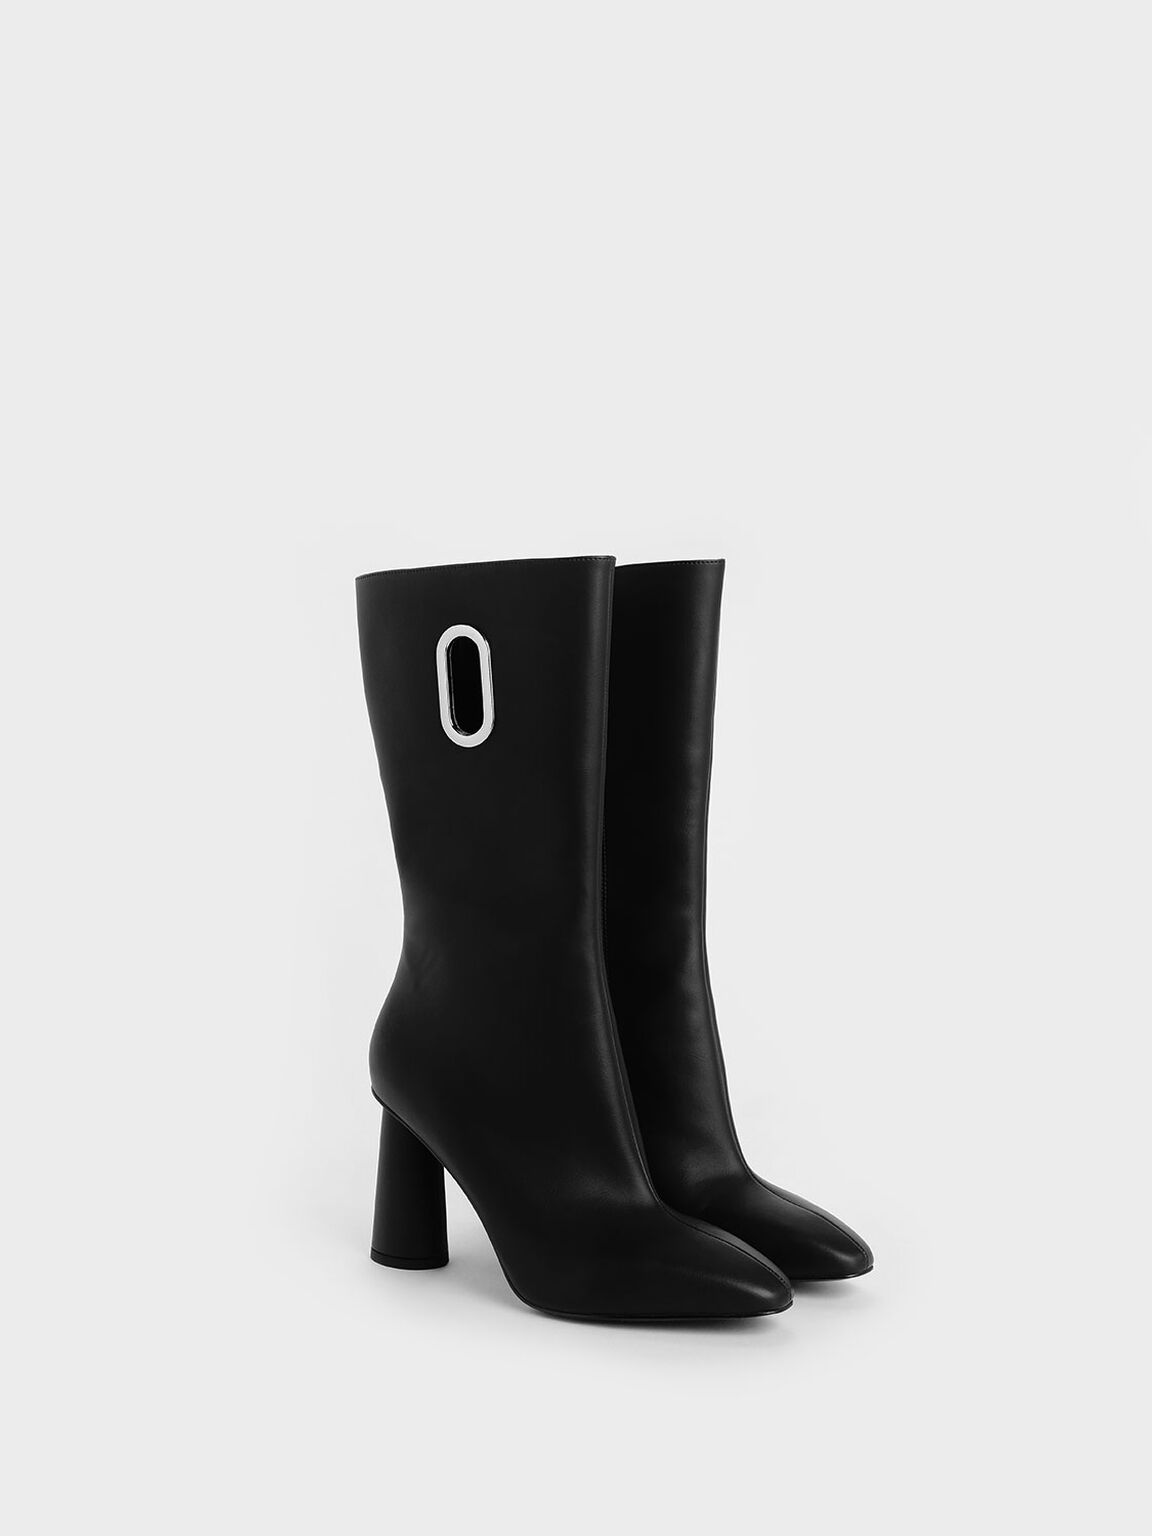 Eyelet Detail Cylindrical Heel Calf Boots, Black, hi-res